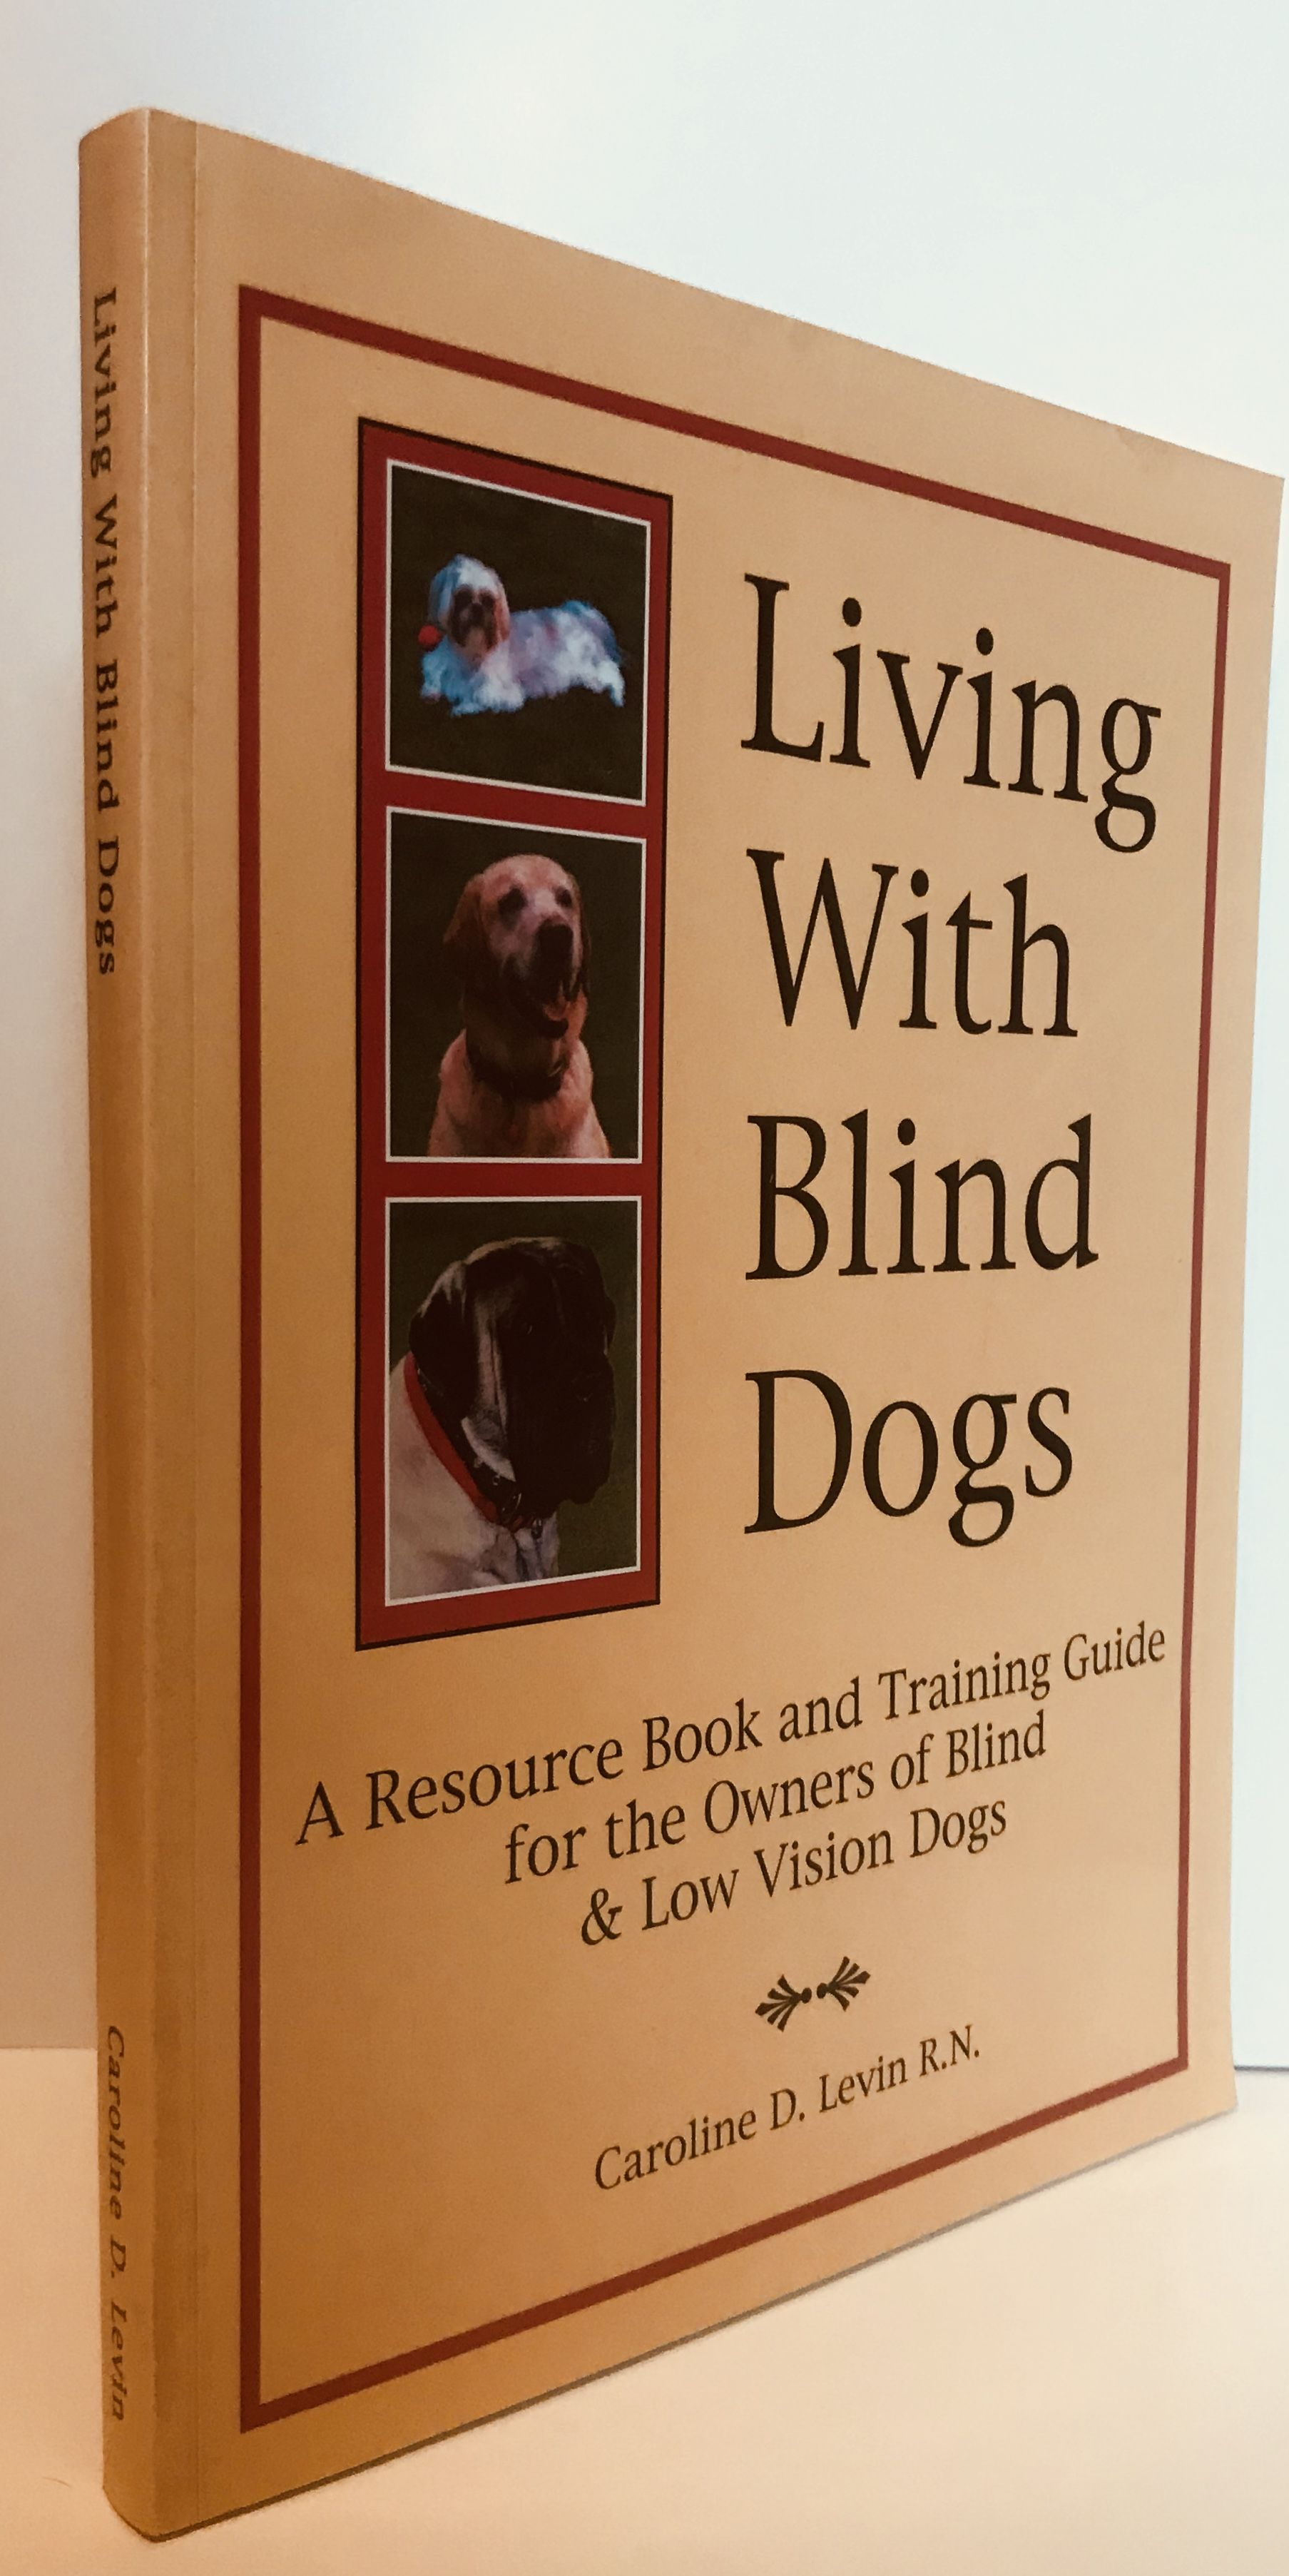 Living With Blind Dogs: A Resource Book and Training Guide for the Owners of Blind and Low Vision Dogs, Levin, Caroline D.